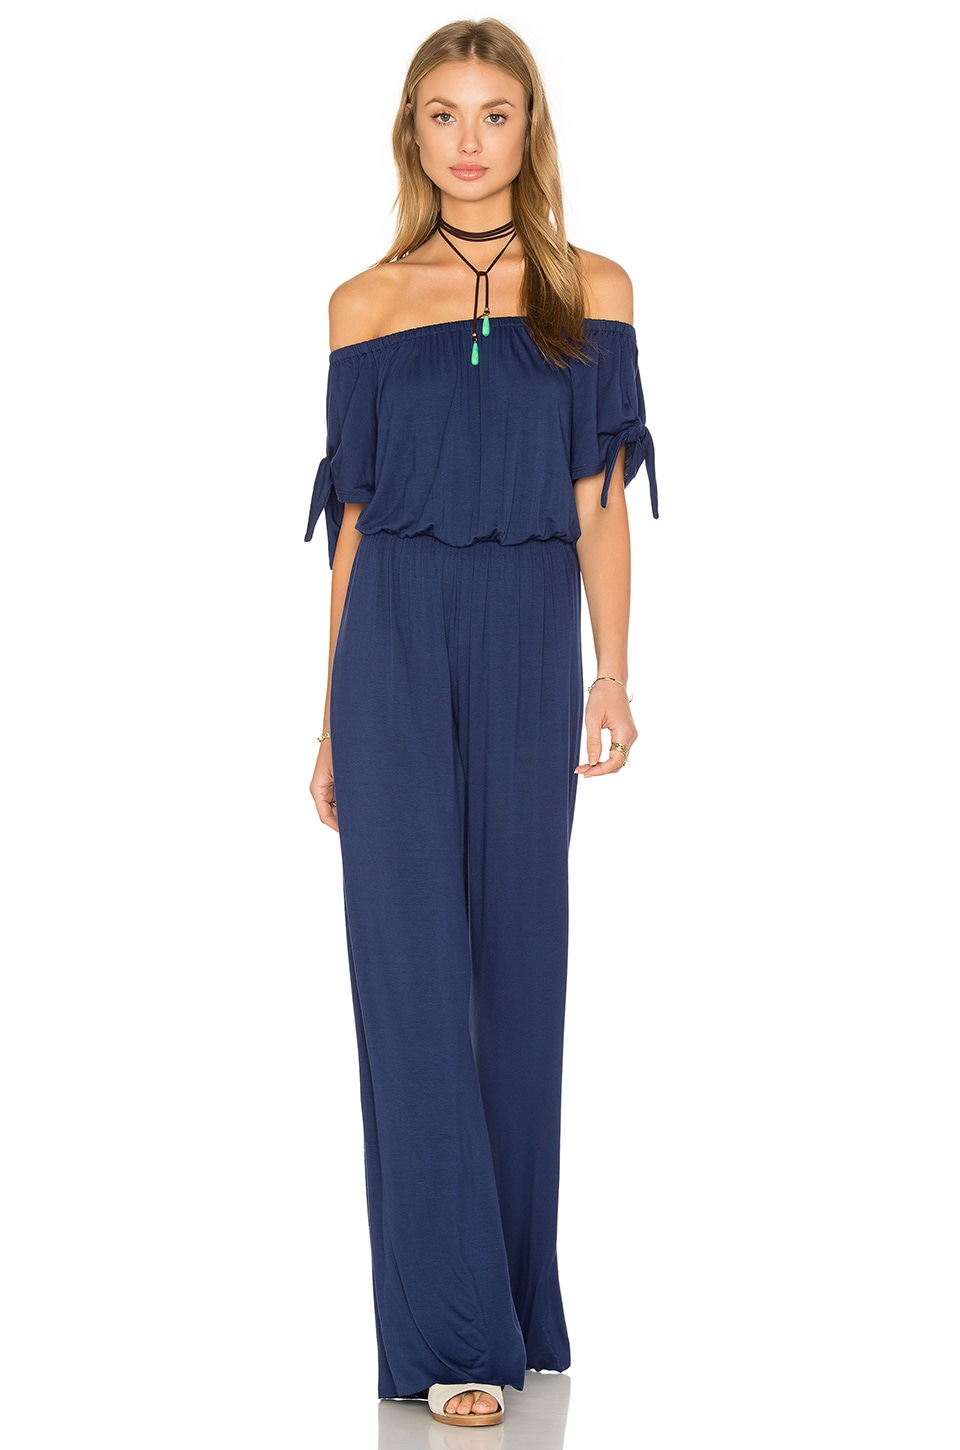 Clayton Daliah Off The Shoulder Jumpsuit in Navy